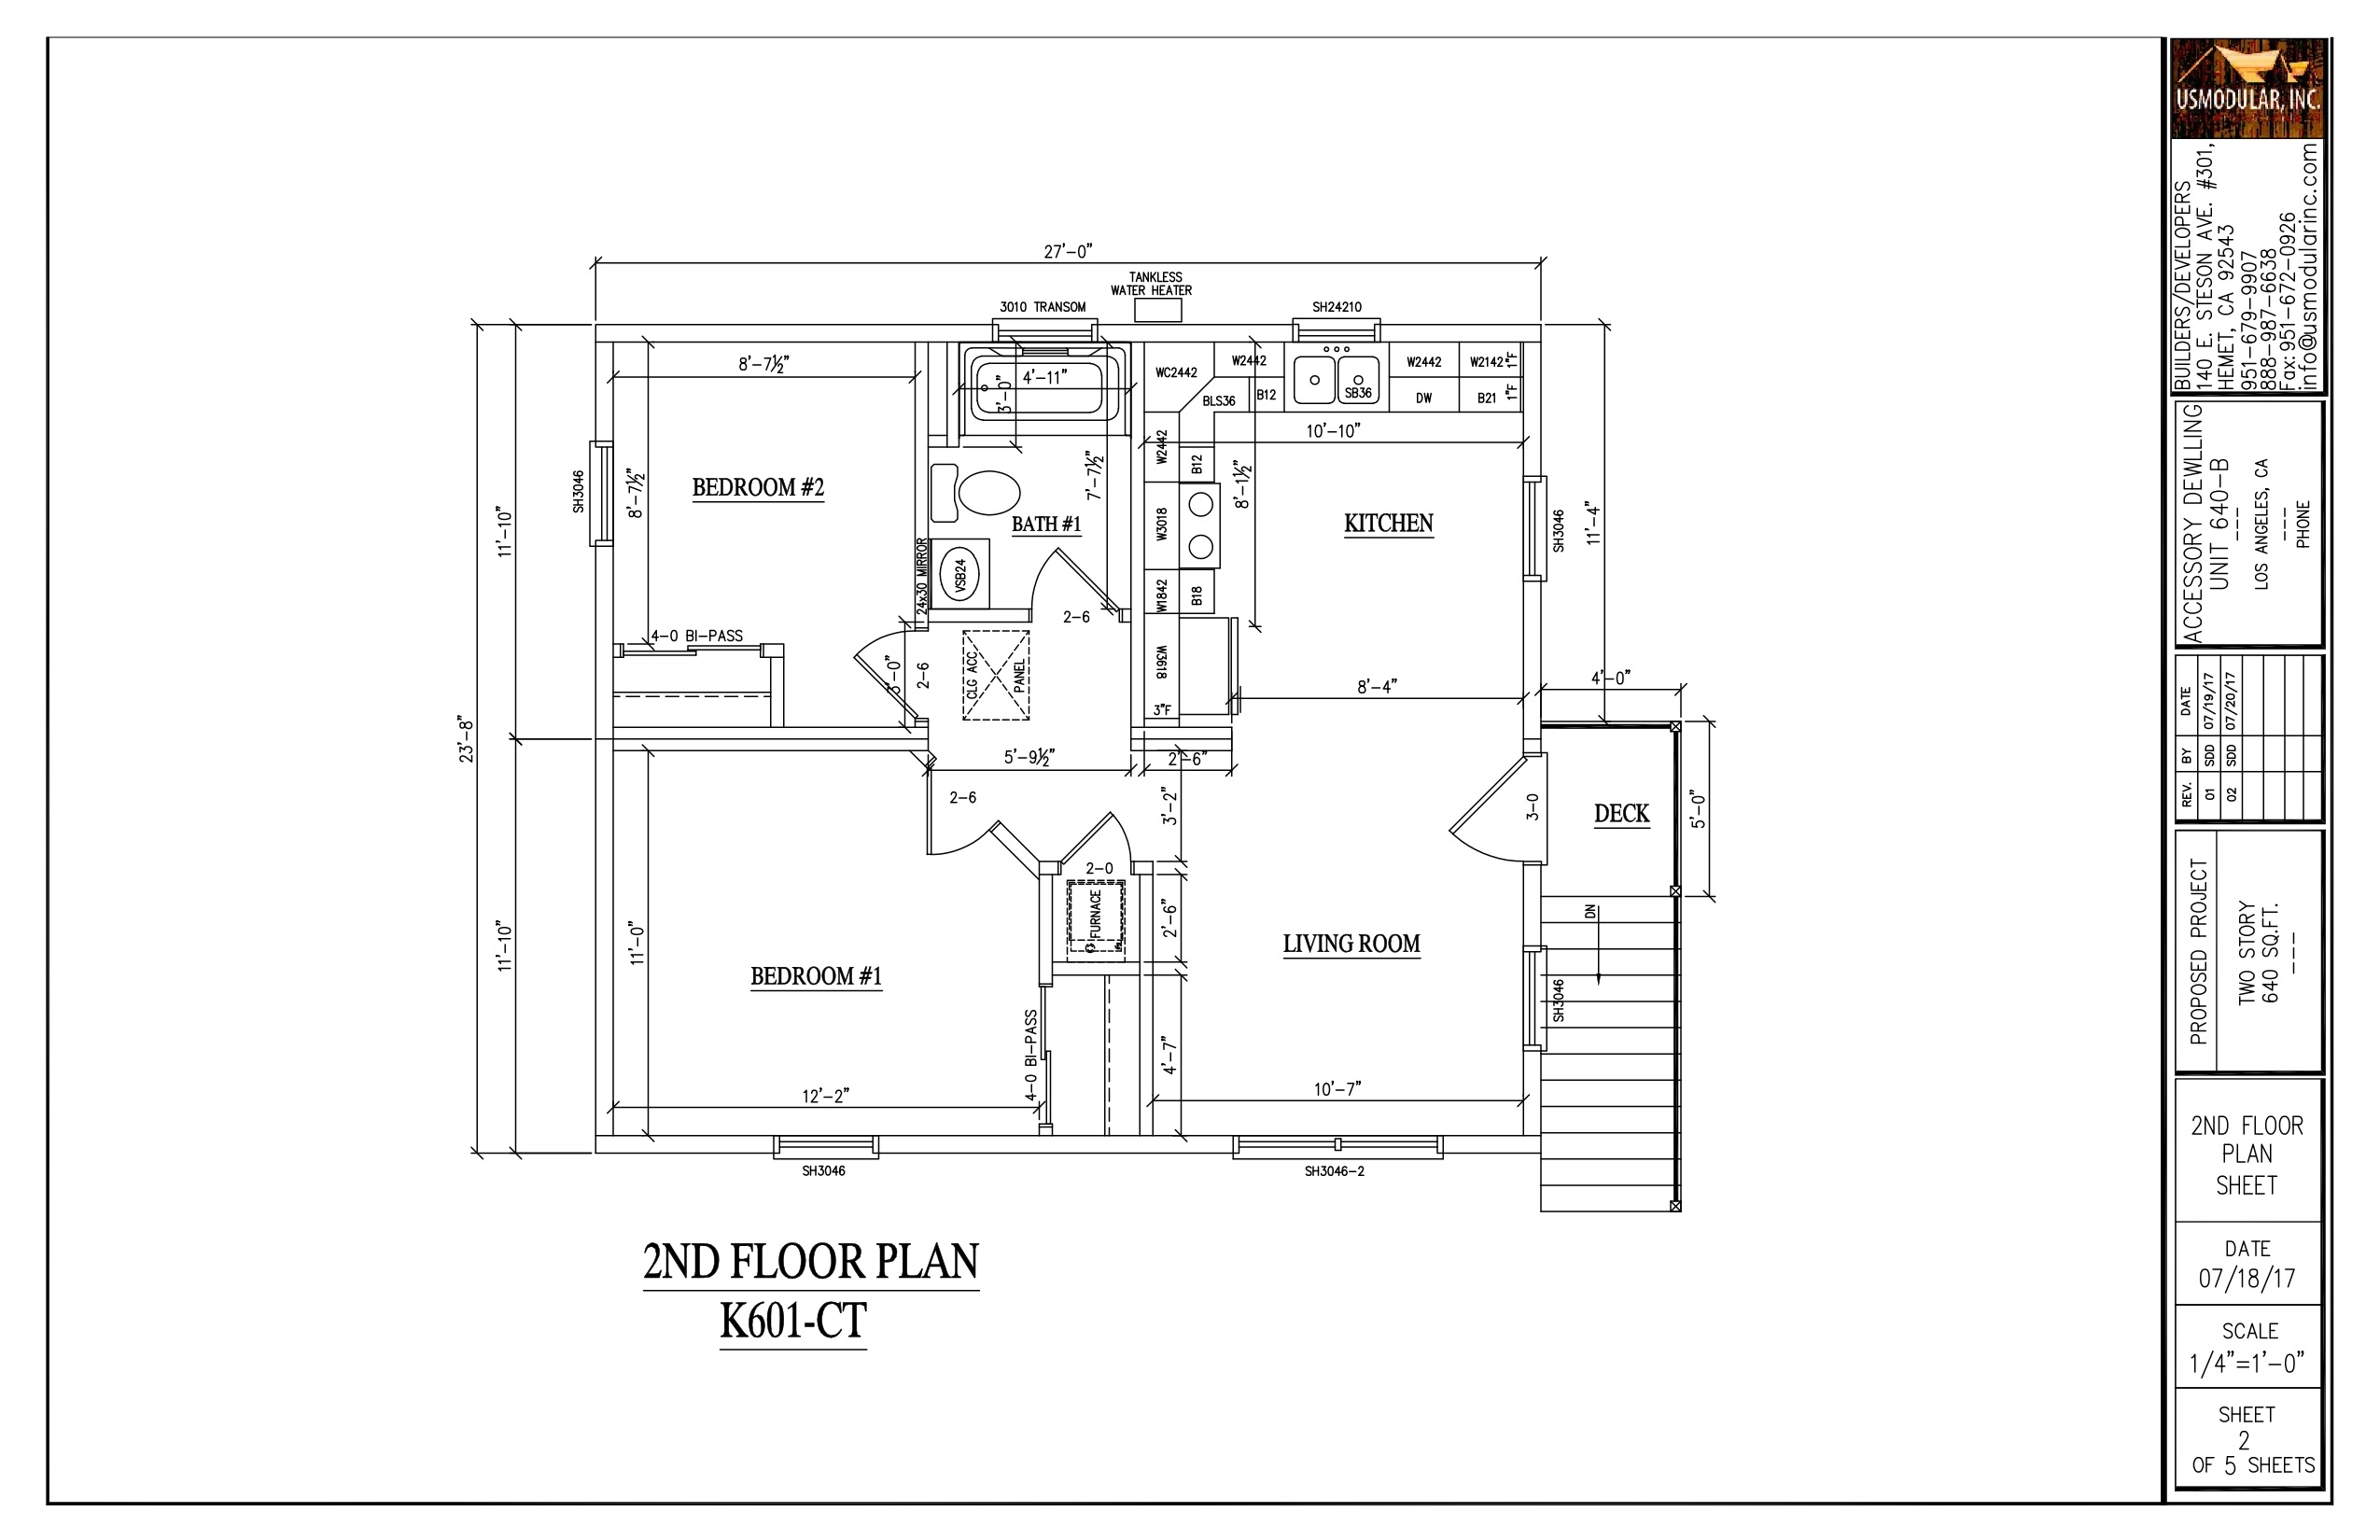 Granny flat floor plans los angeles granny flats for Modular granny flat california